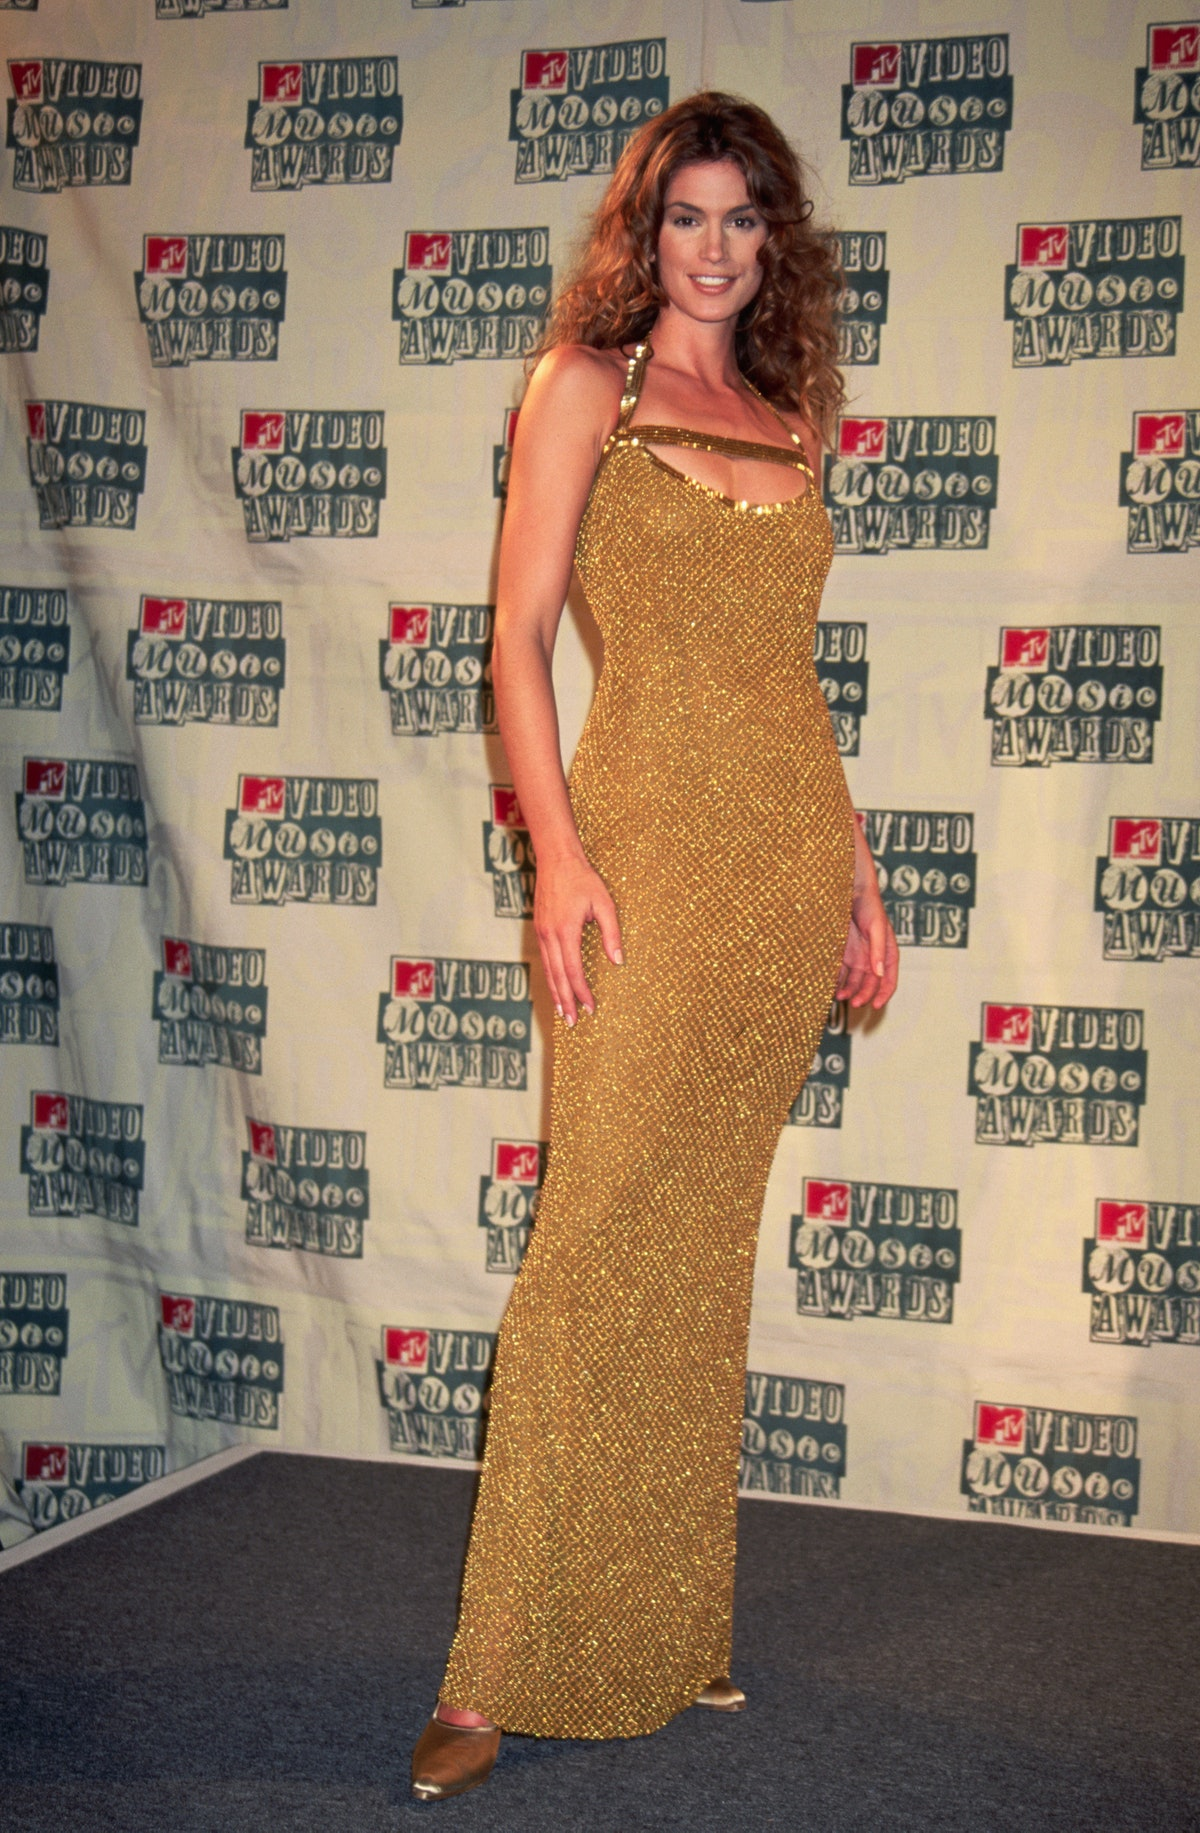 Model Cindy Crawford attends the MTV Music Awards at Radio City Music Hall in New York City.